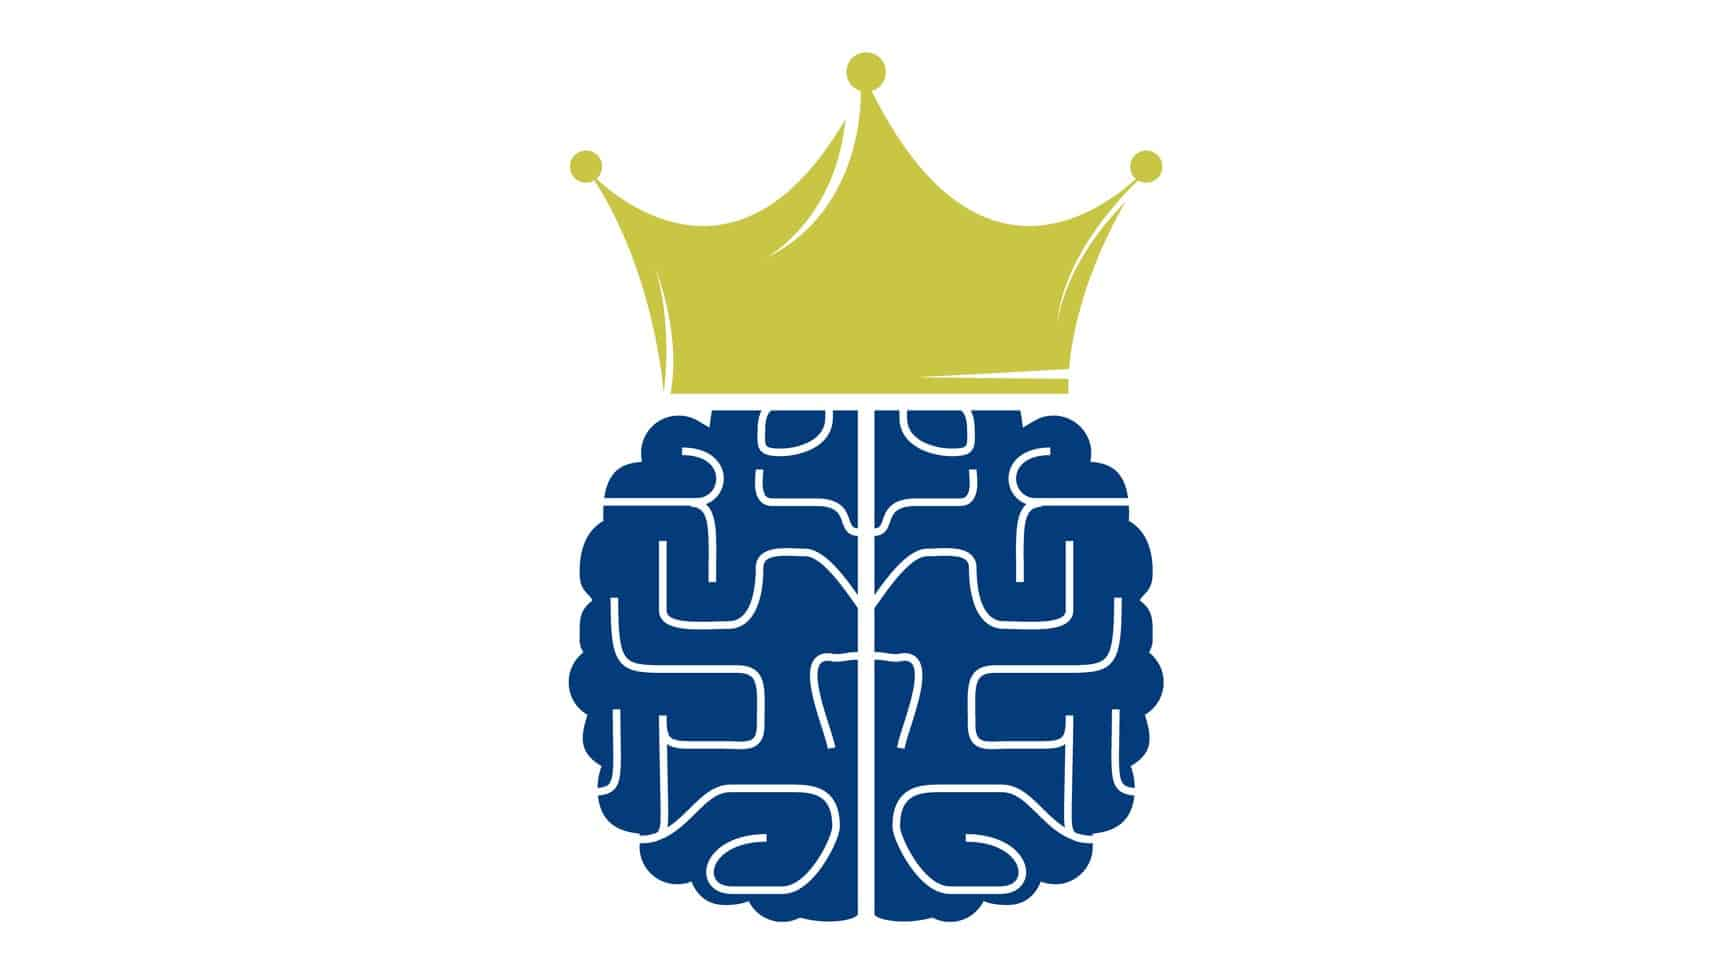 brainchip shares represented by illustration of a blue brain wearing a gold crown